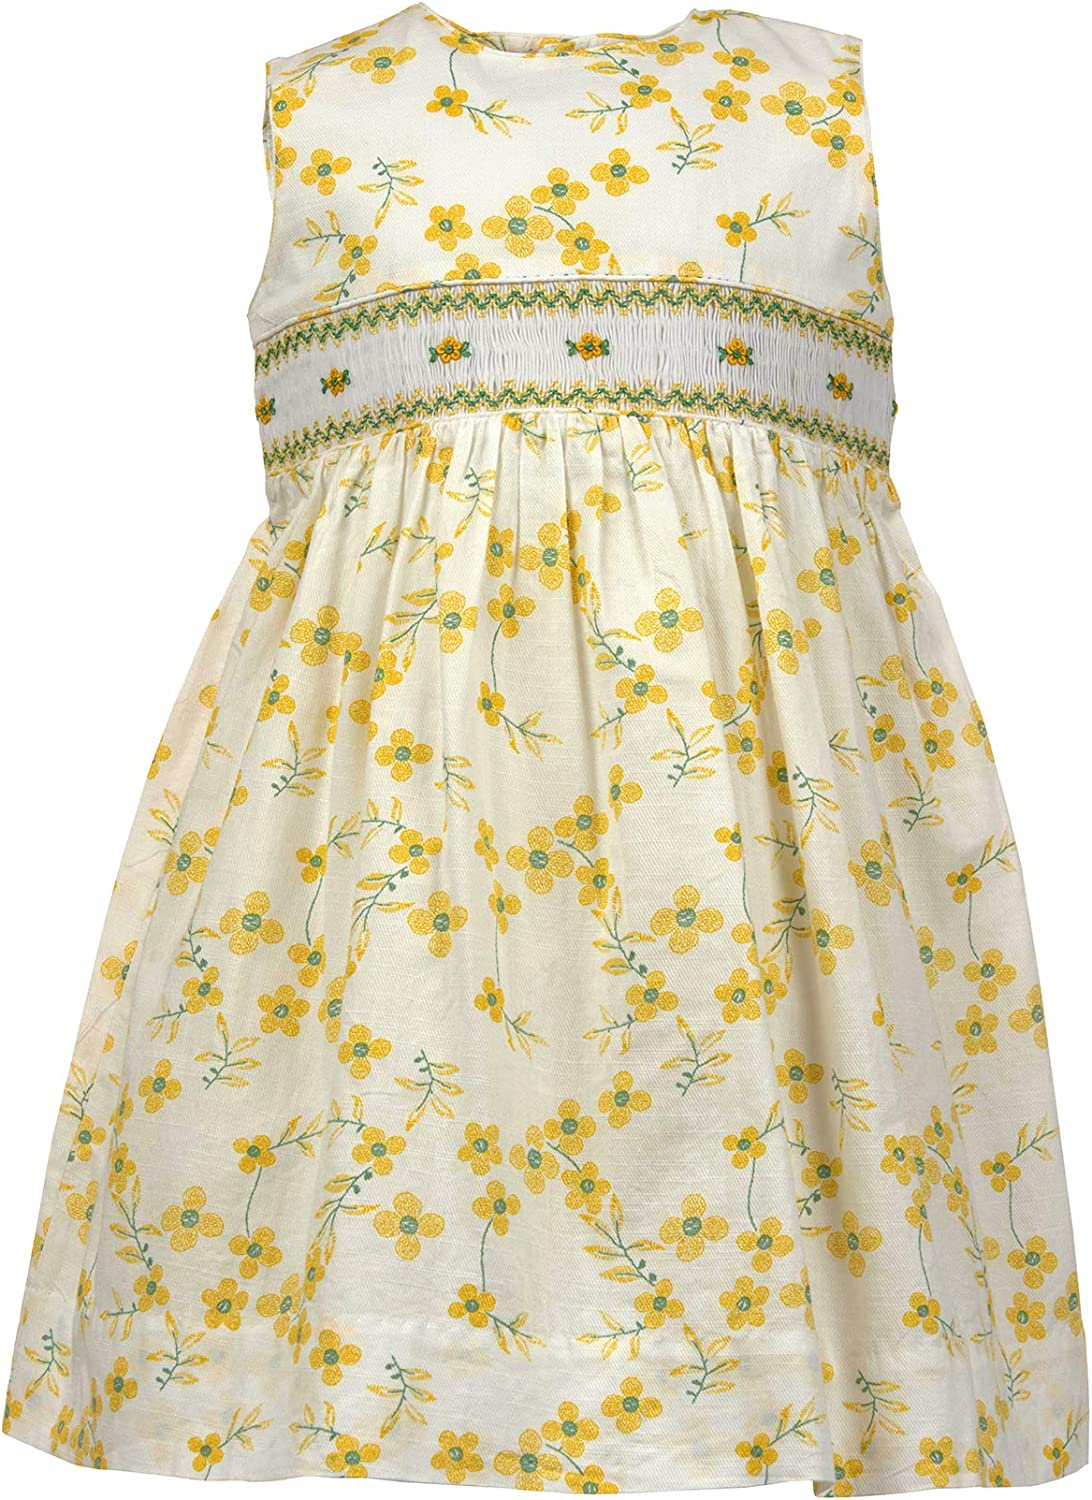 Girls Dress Yellow Floral Sleeveless Dress with Hand Smocking